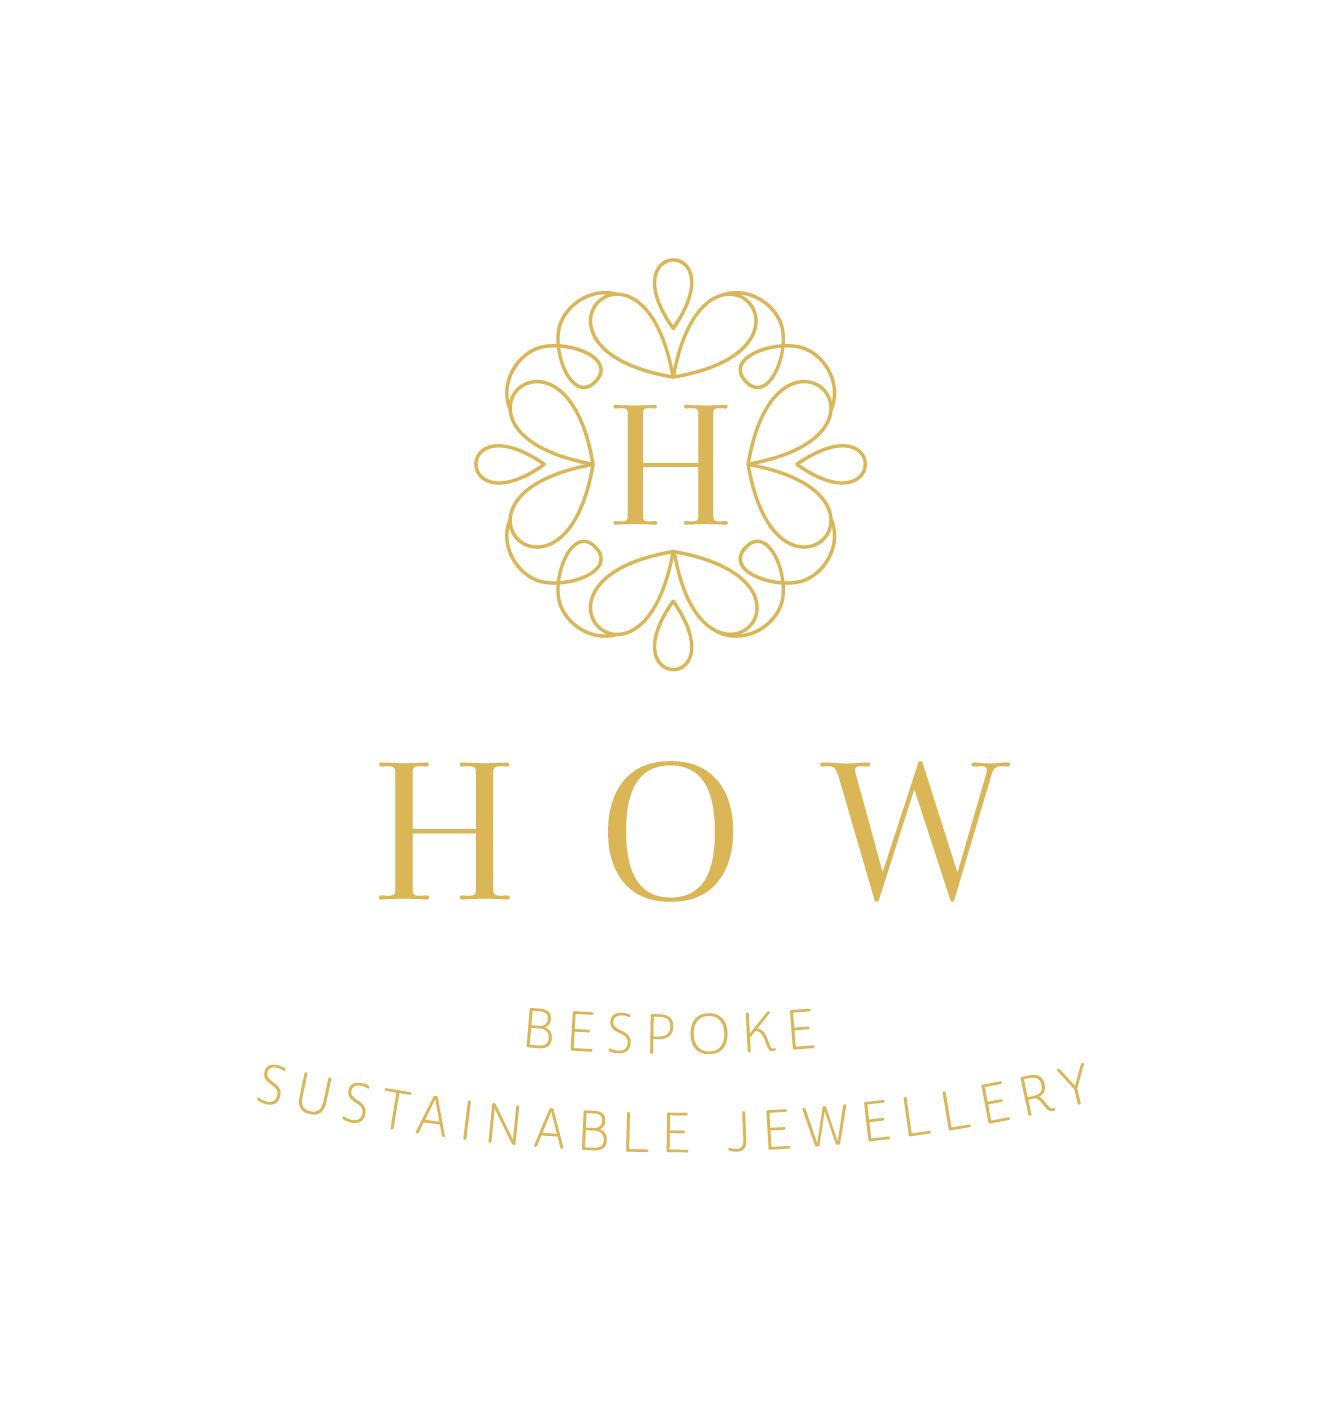 How Jewellery logo Bespoke Sustainable Jewellery